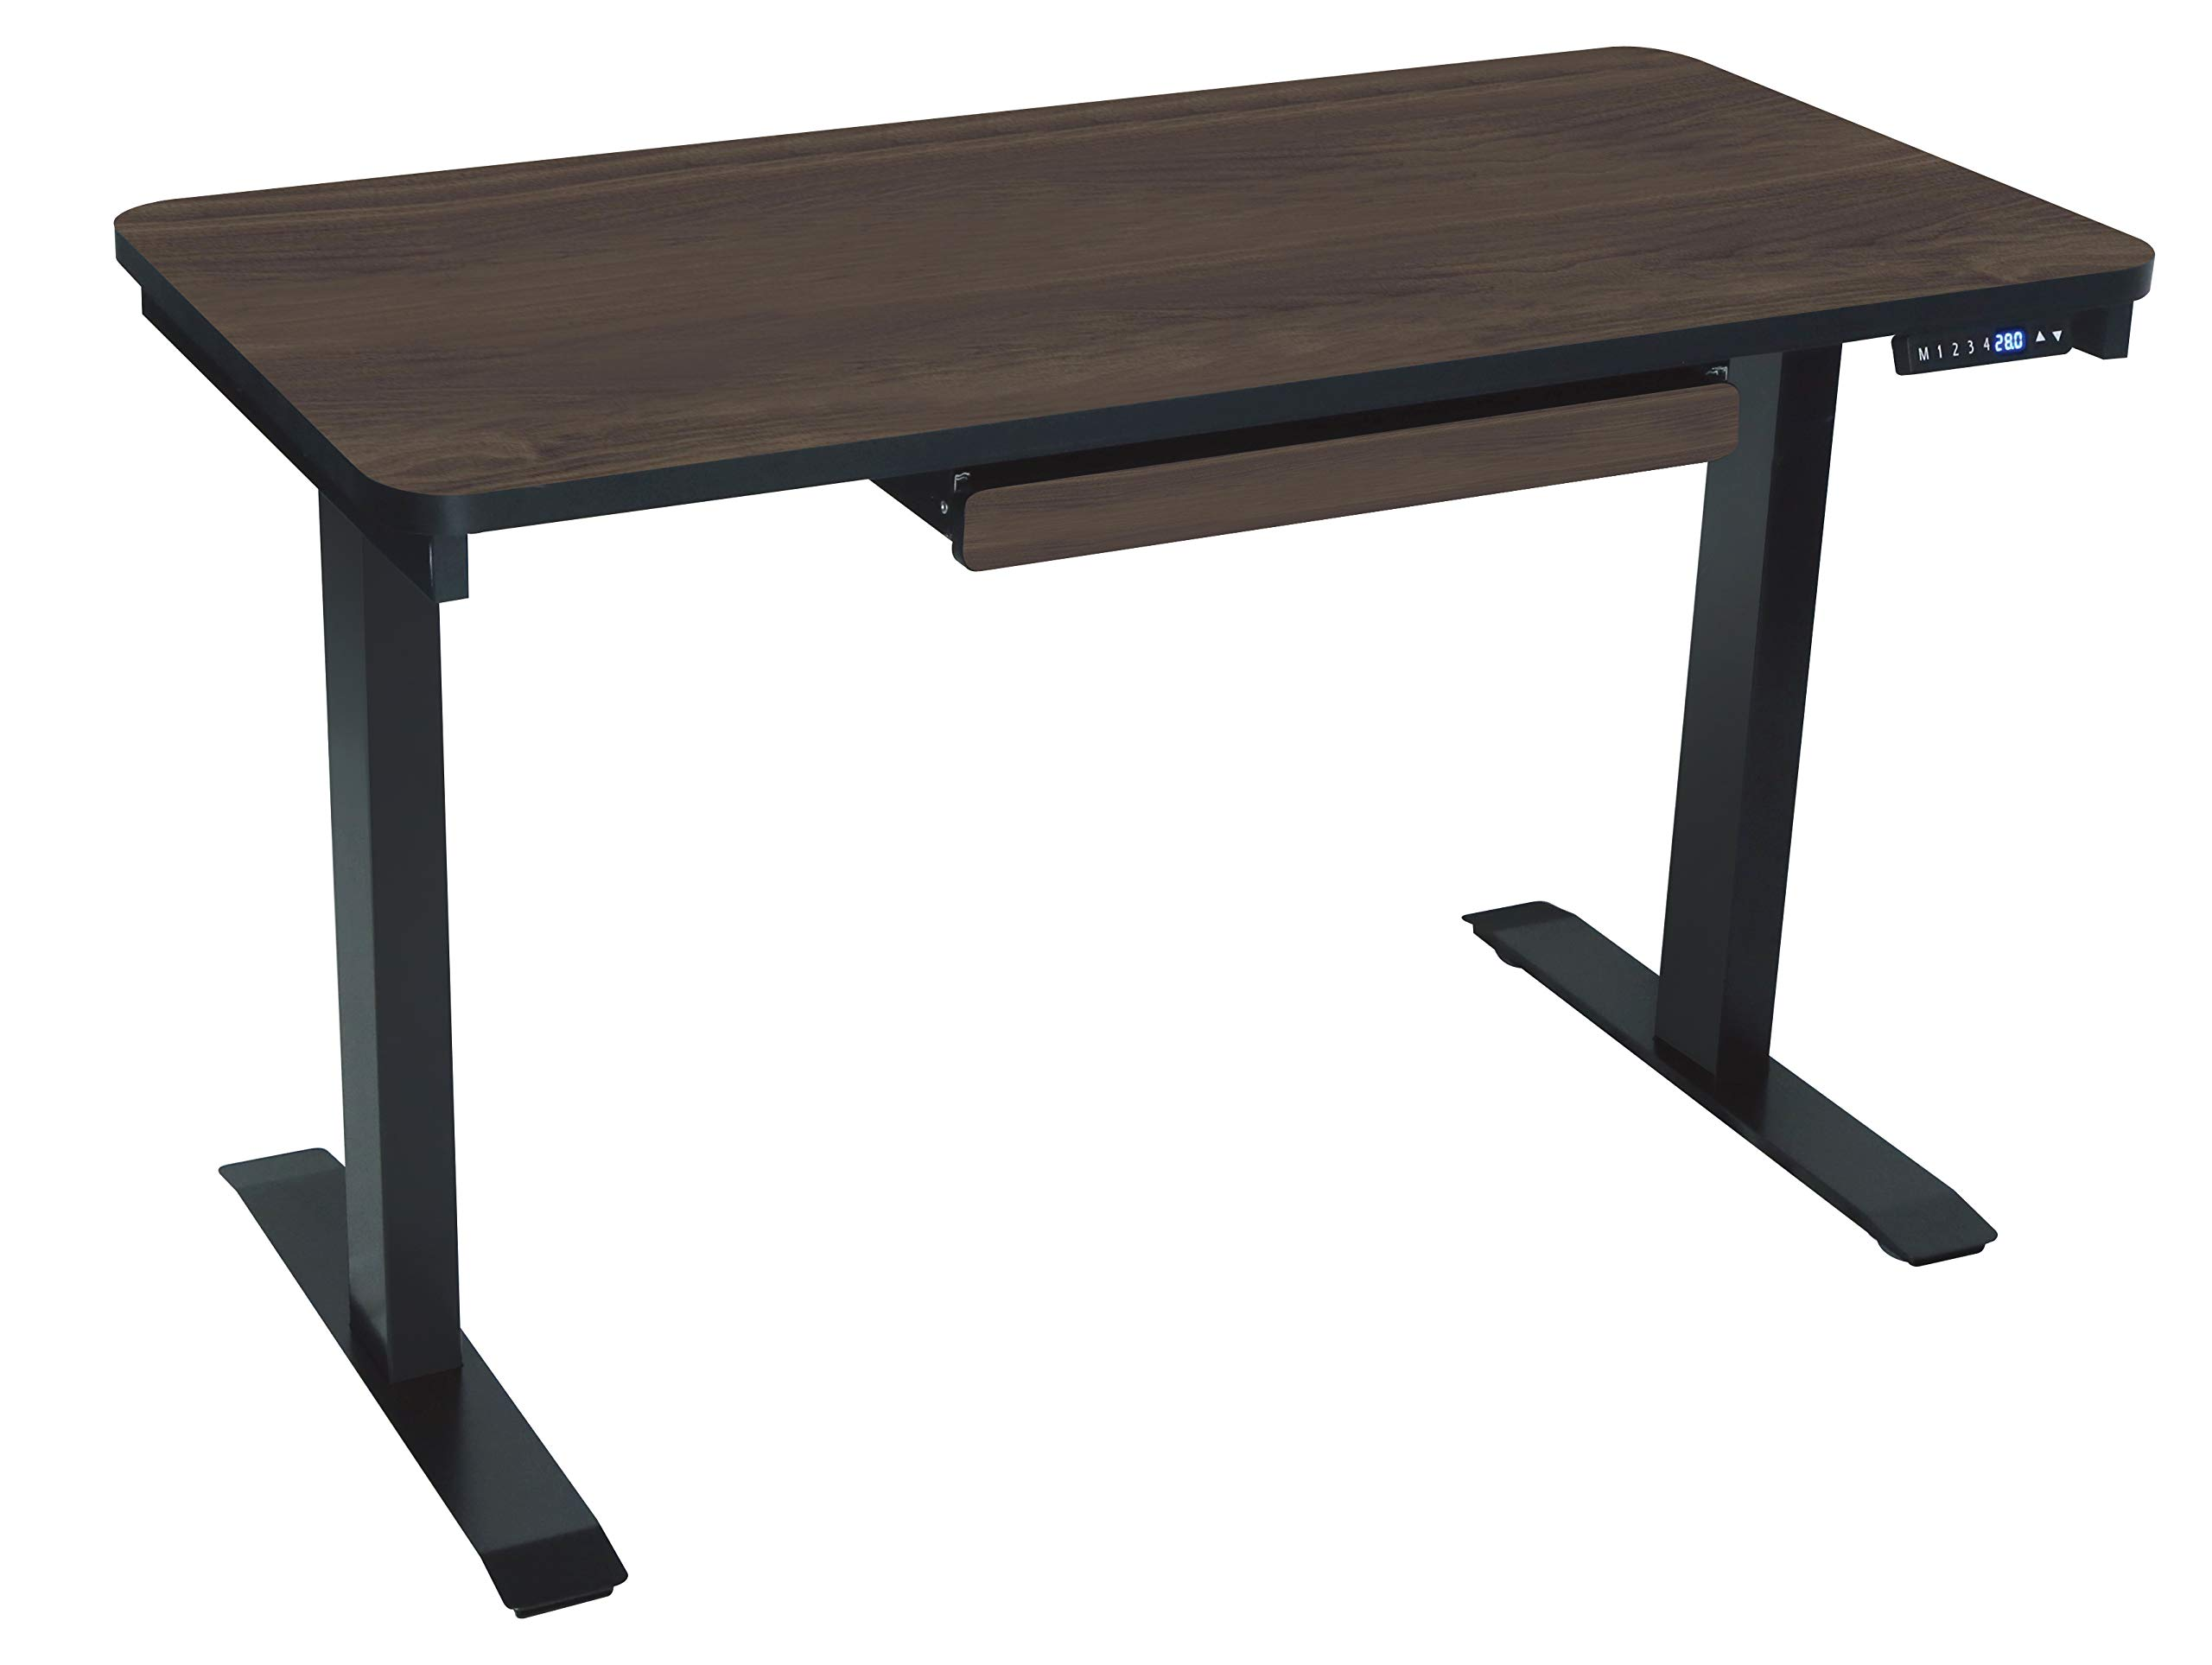 Motionwise SDG48A Electric Standing Desk, 24''x48 Home Office Series 28''-48'' with Quickly Program up to 4 pre-Set Height adjustments and USB Charge Port, Walnut Top with Black by MotionWise